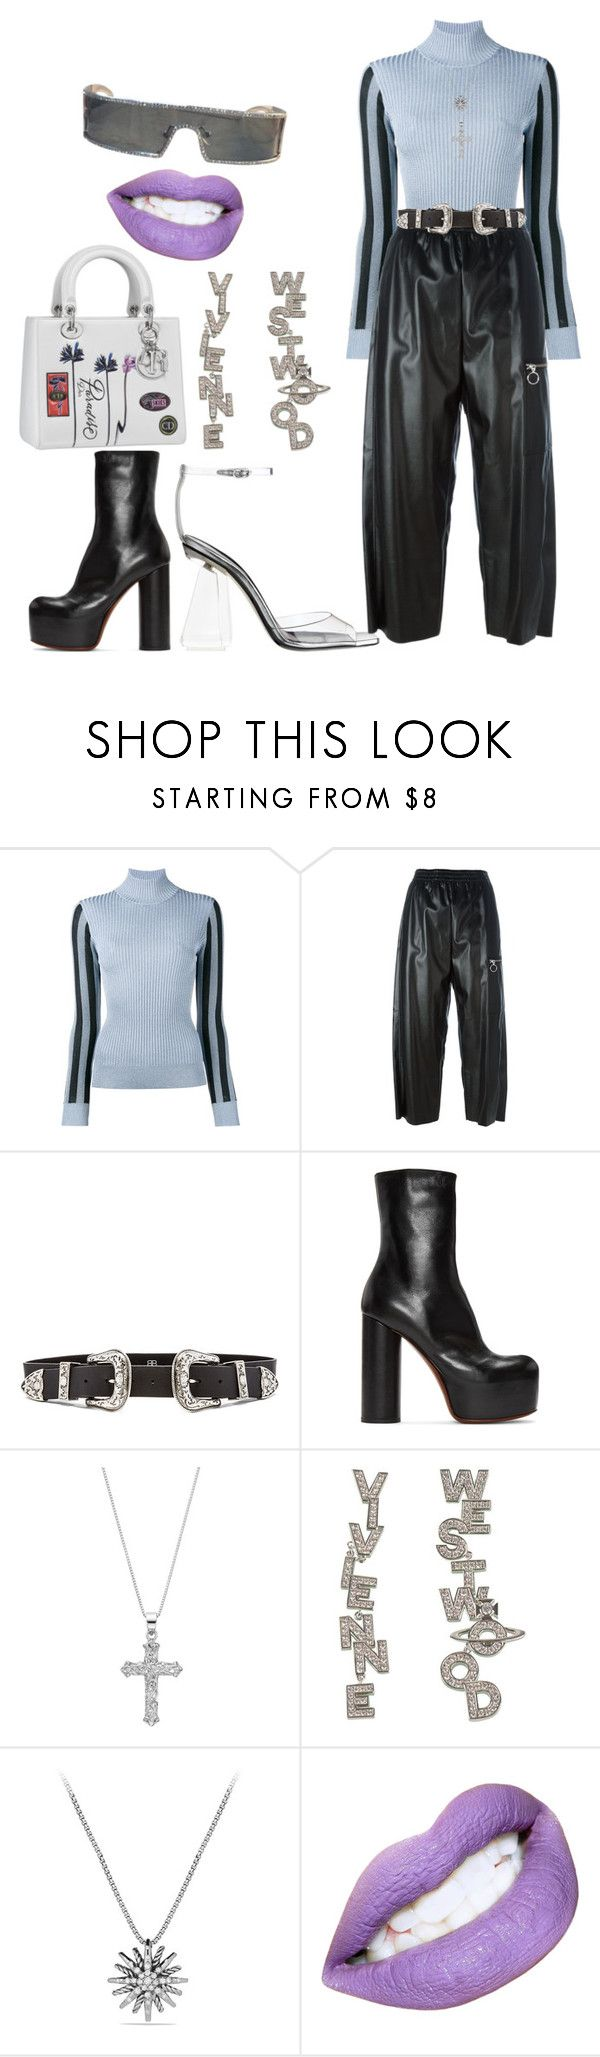 """Futuristic"" by childishglambino ❤ liked on Polyvore featuring House of Holland, MM6 Maison Margiela, B-Low the Belt, Vetements, Timeless Sterling Silver, Vivienne Westwood and David Yurman"